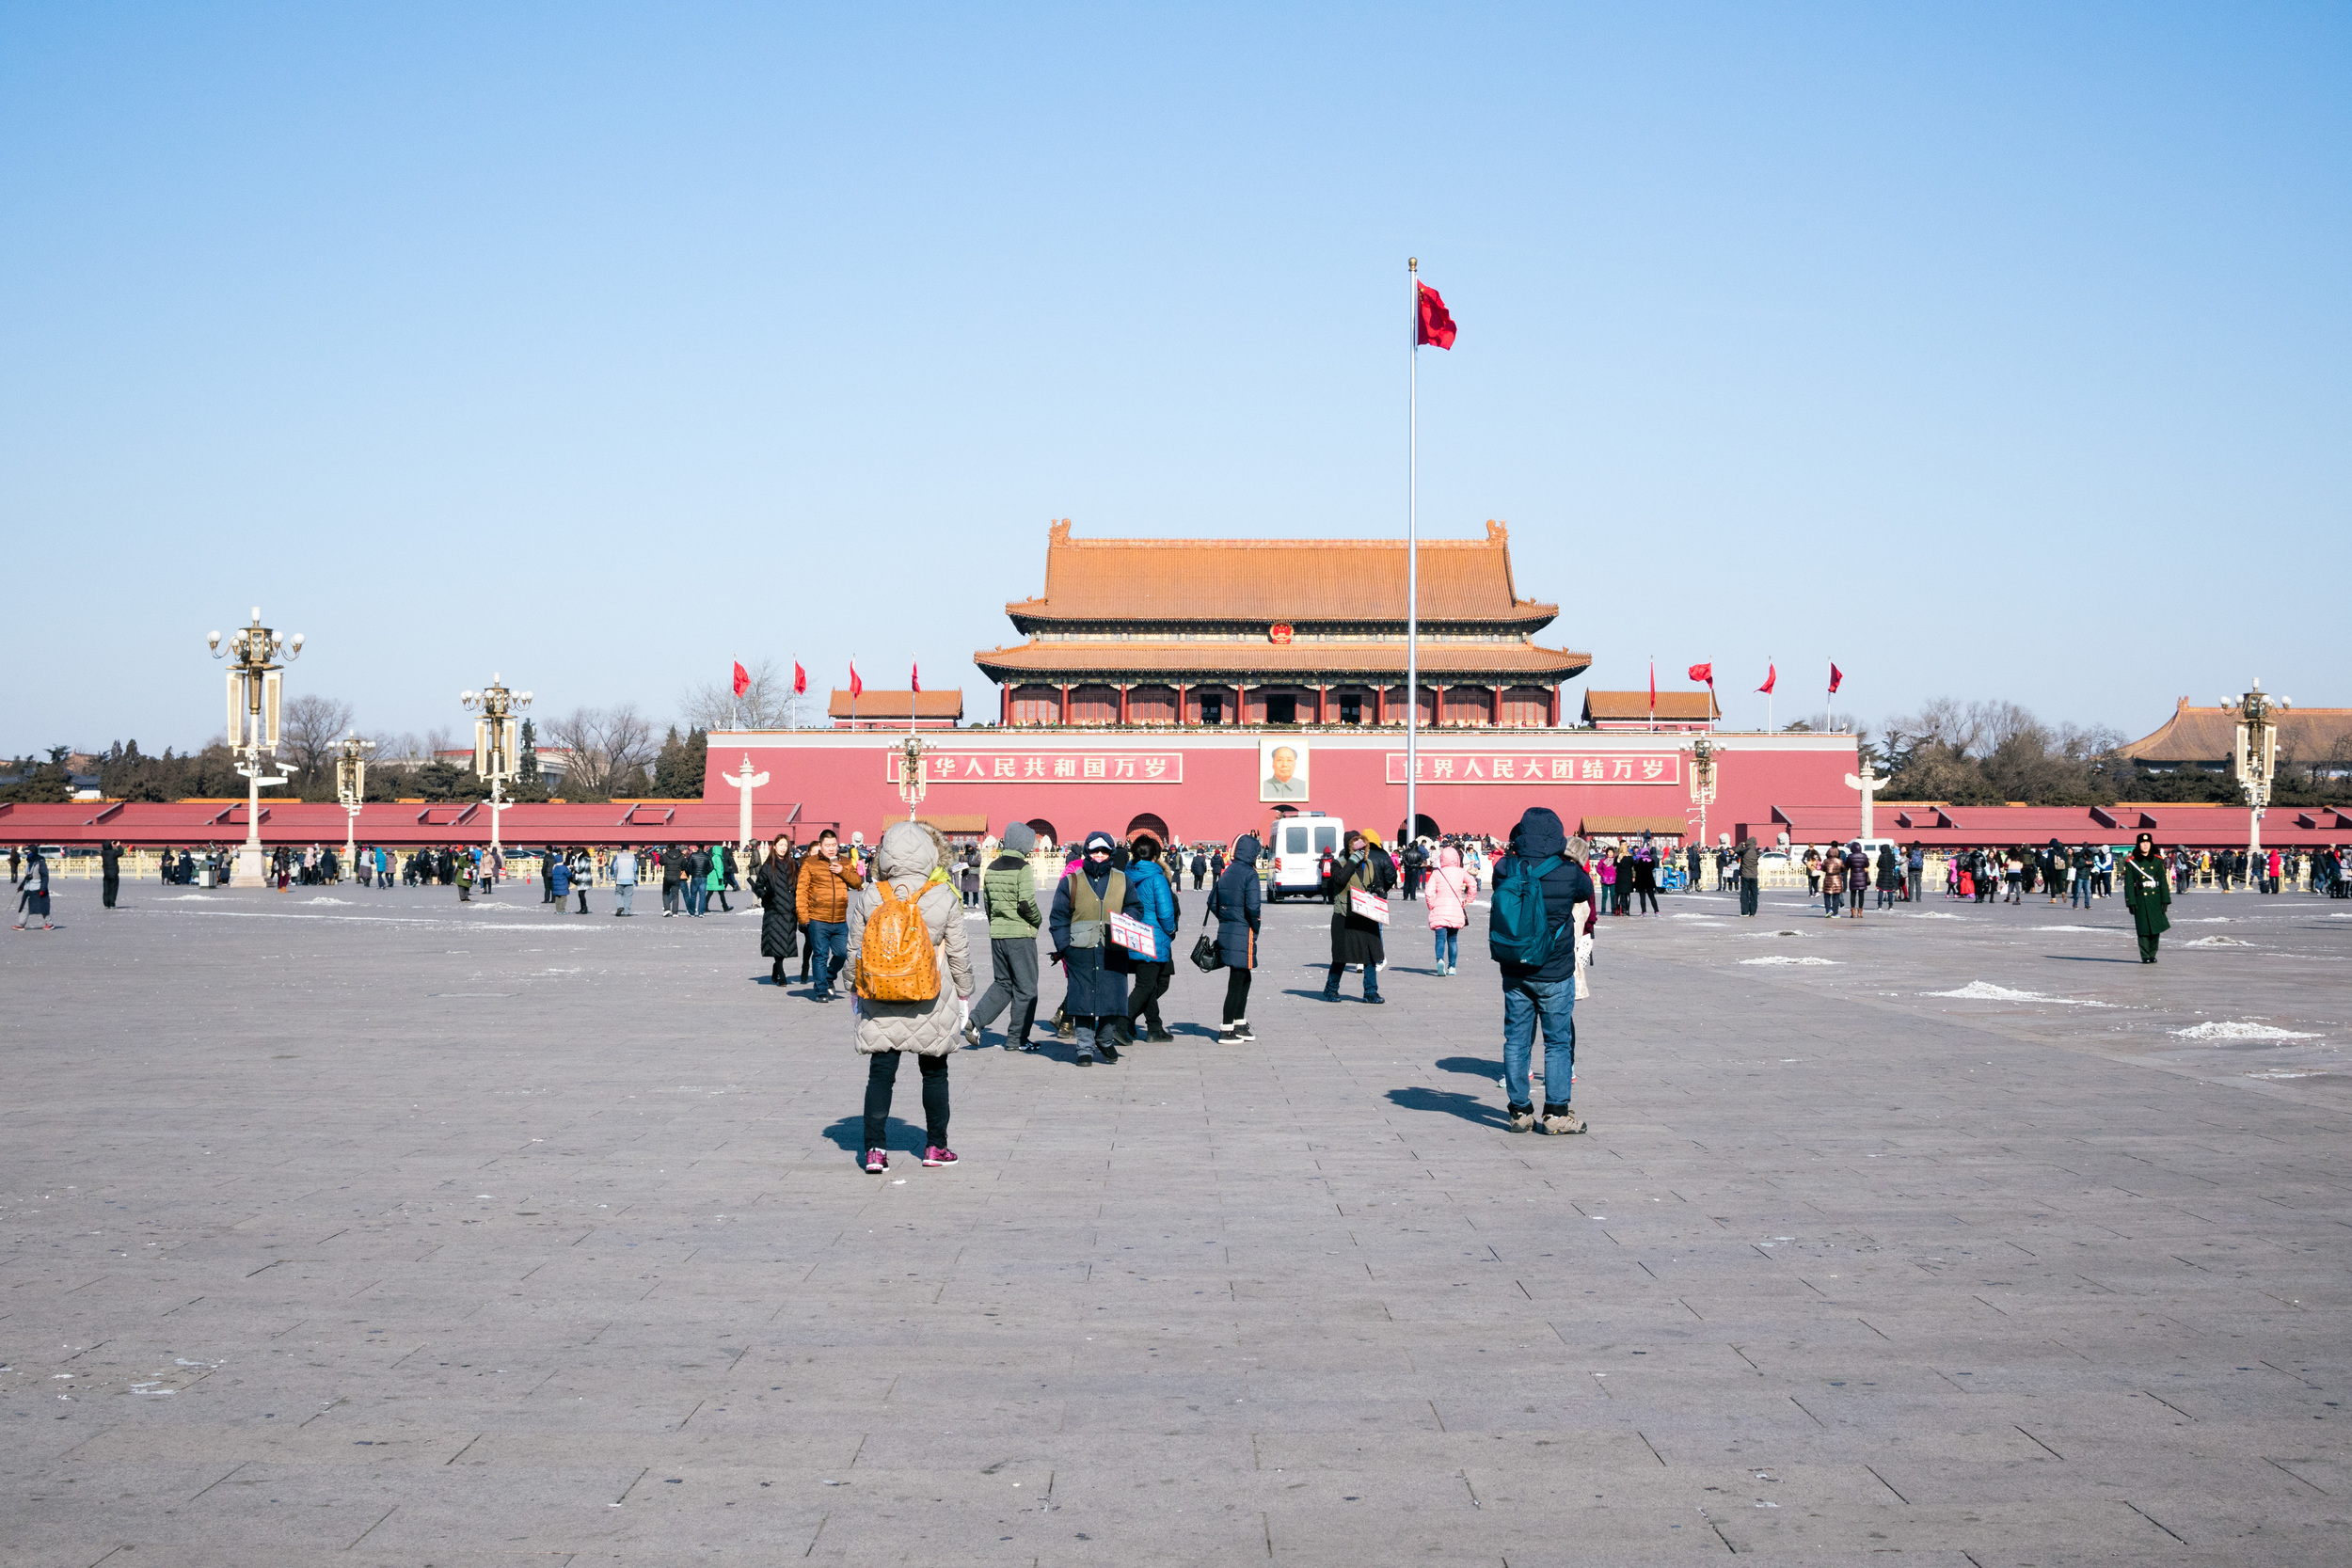 Tiananmen Square looking at the Forbidden City